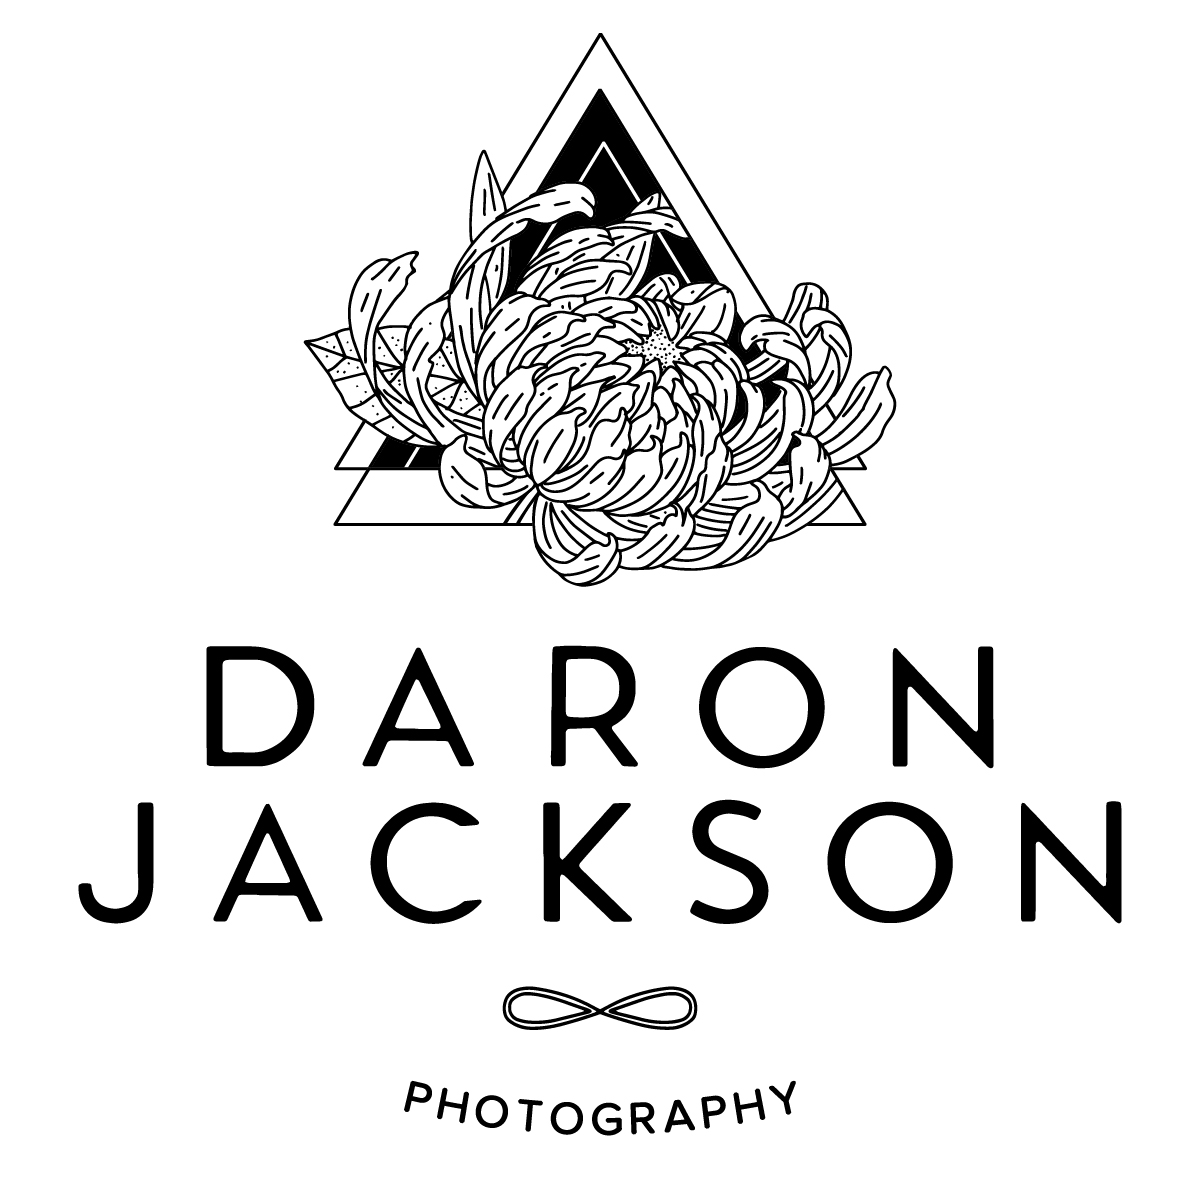 DARON JACKSON PHOTOGRAPHY